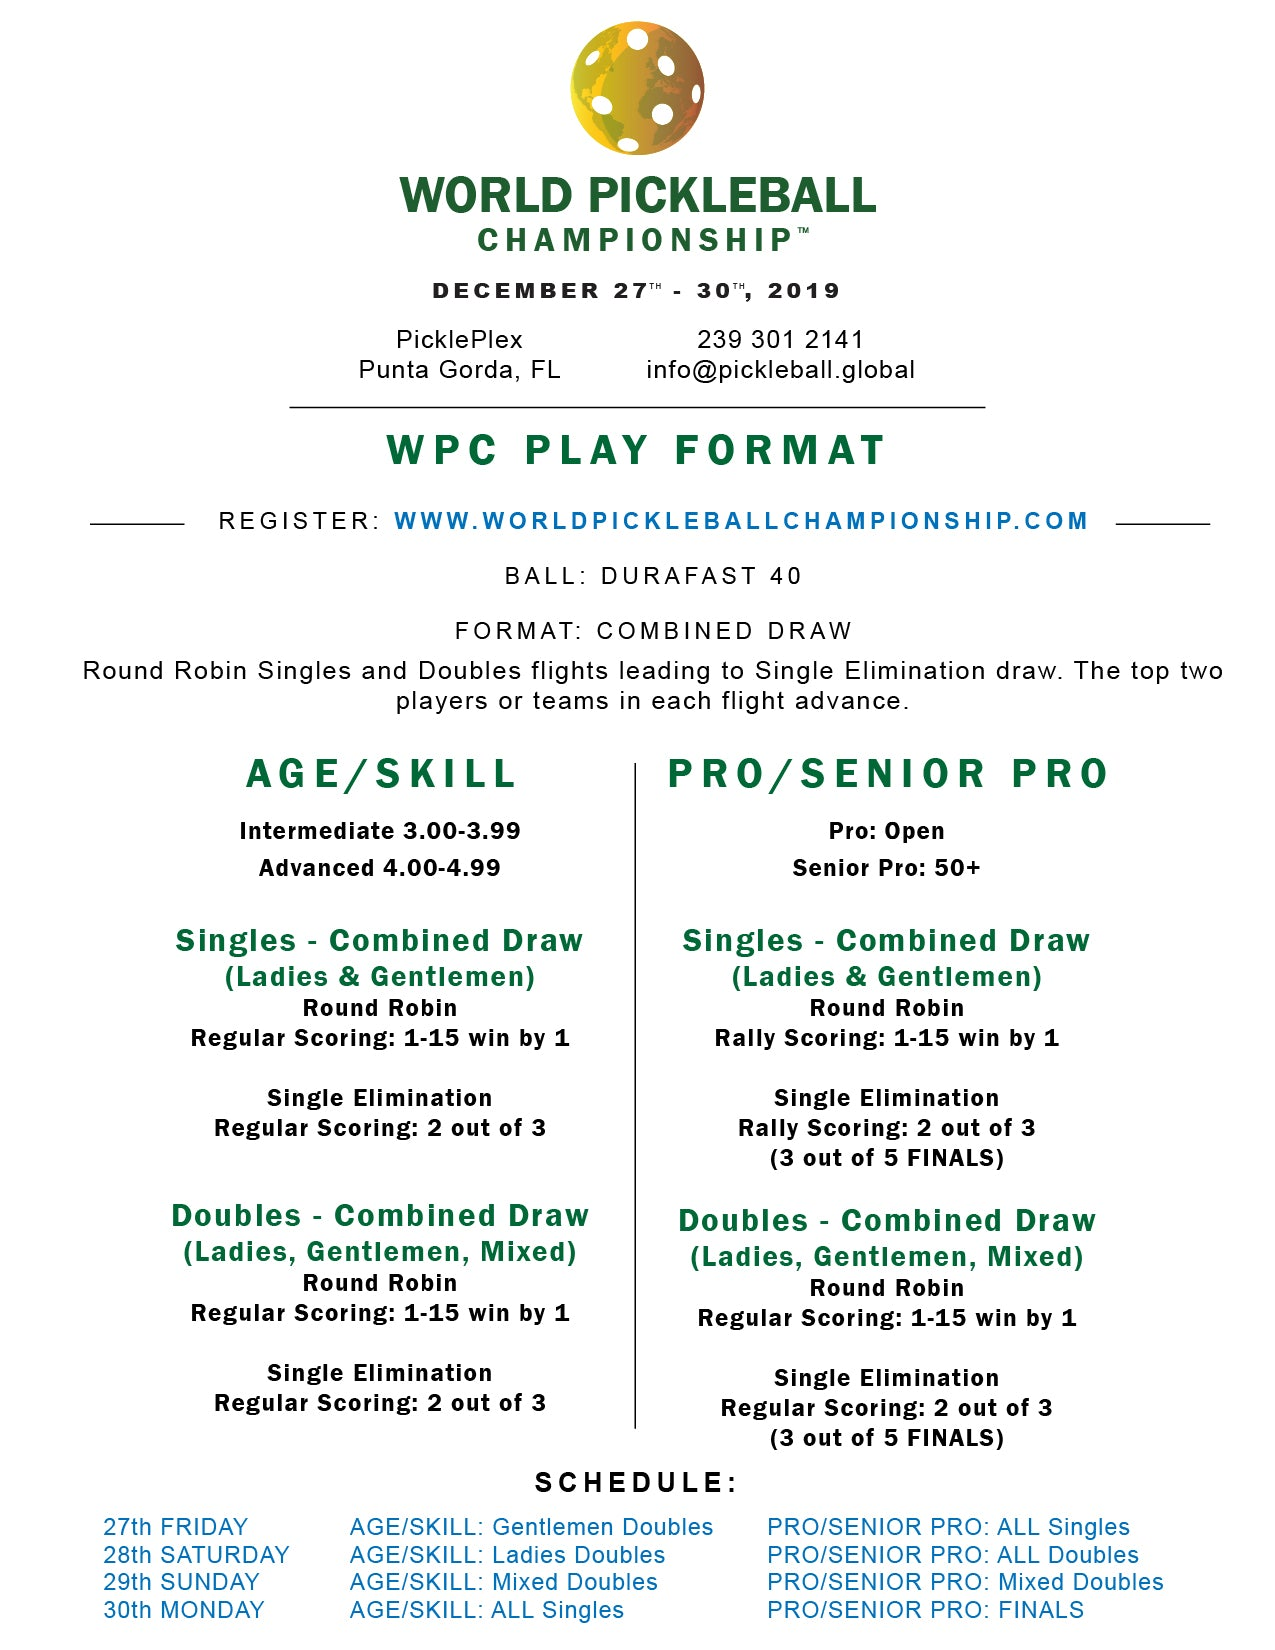 World Pickleball Championship Play Format